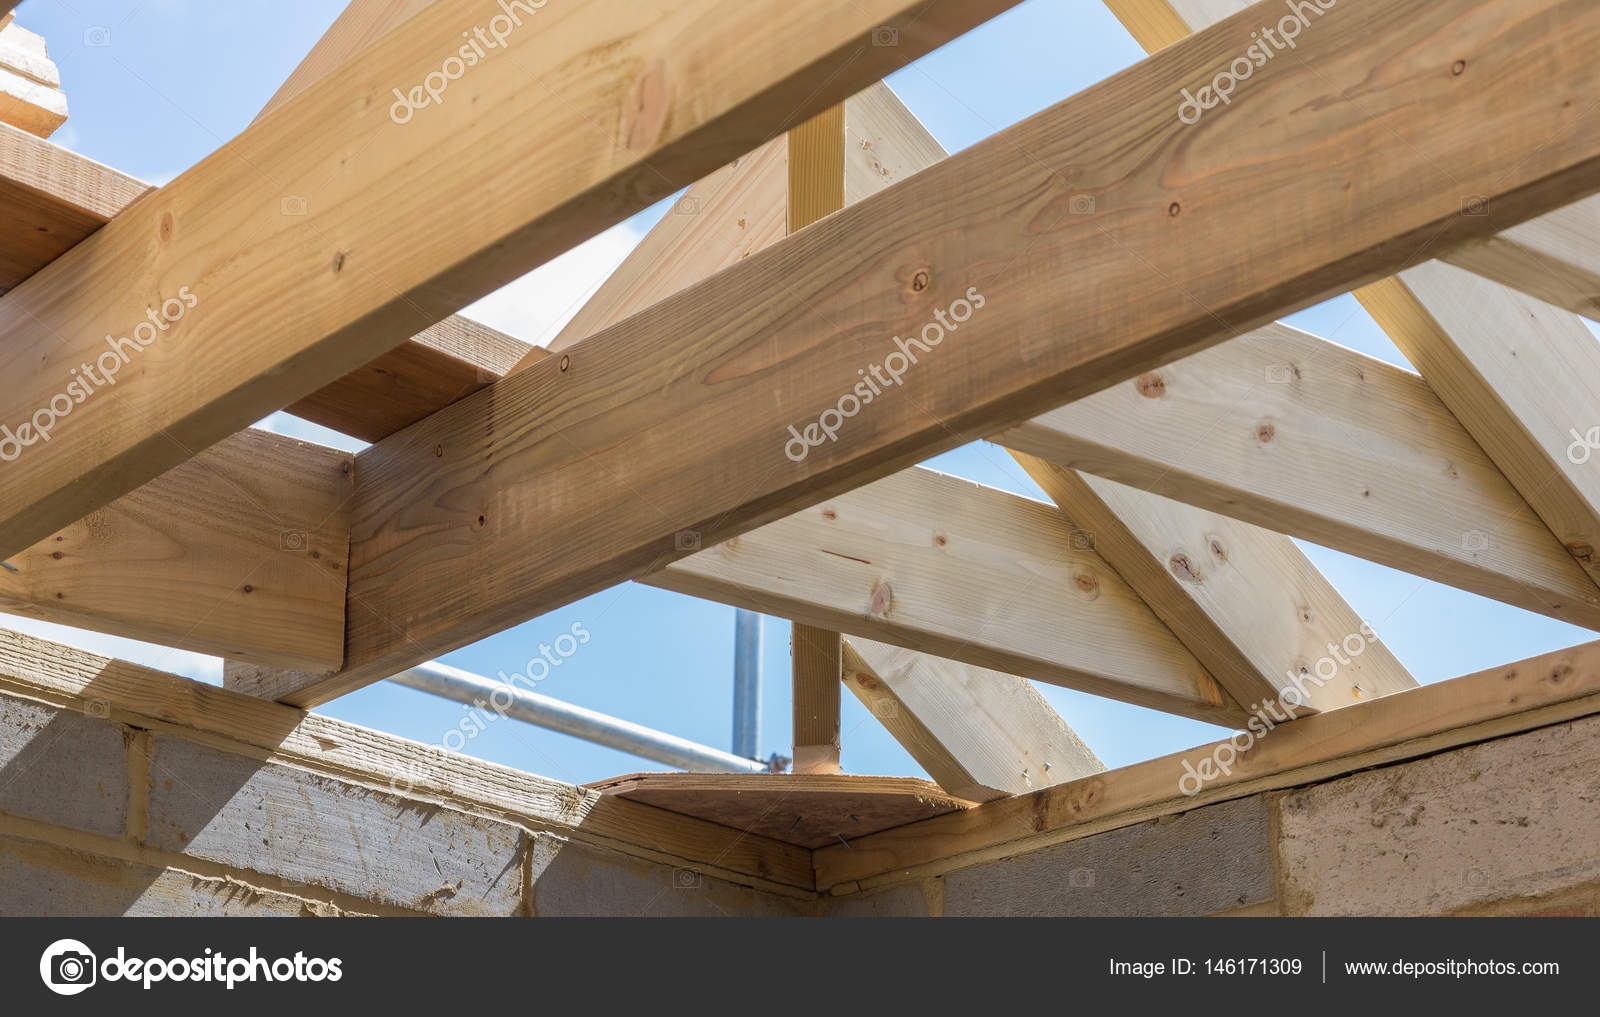 Wooden roof construction details — Stock Photo